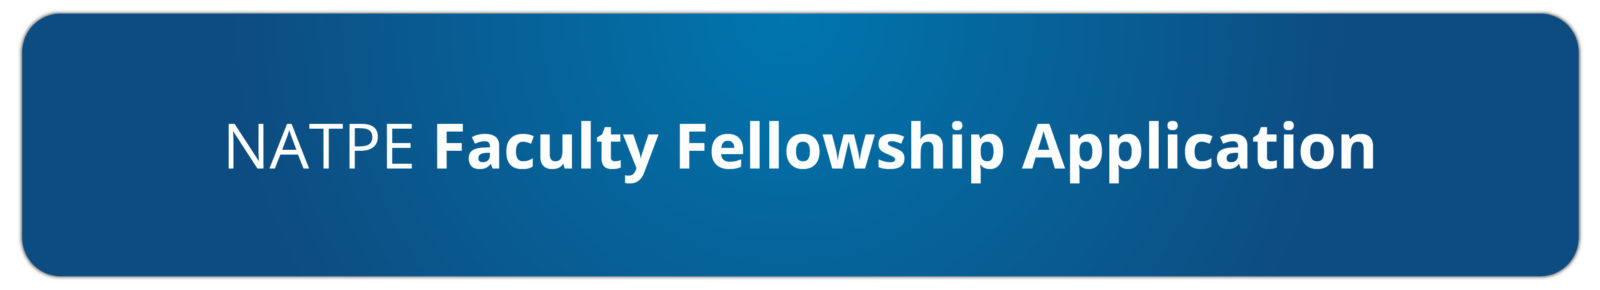 NATPE Faculty Fellowship Application